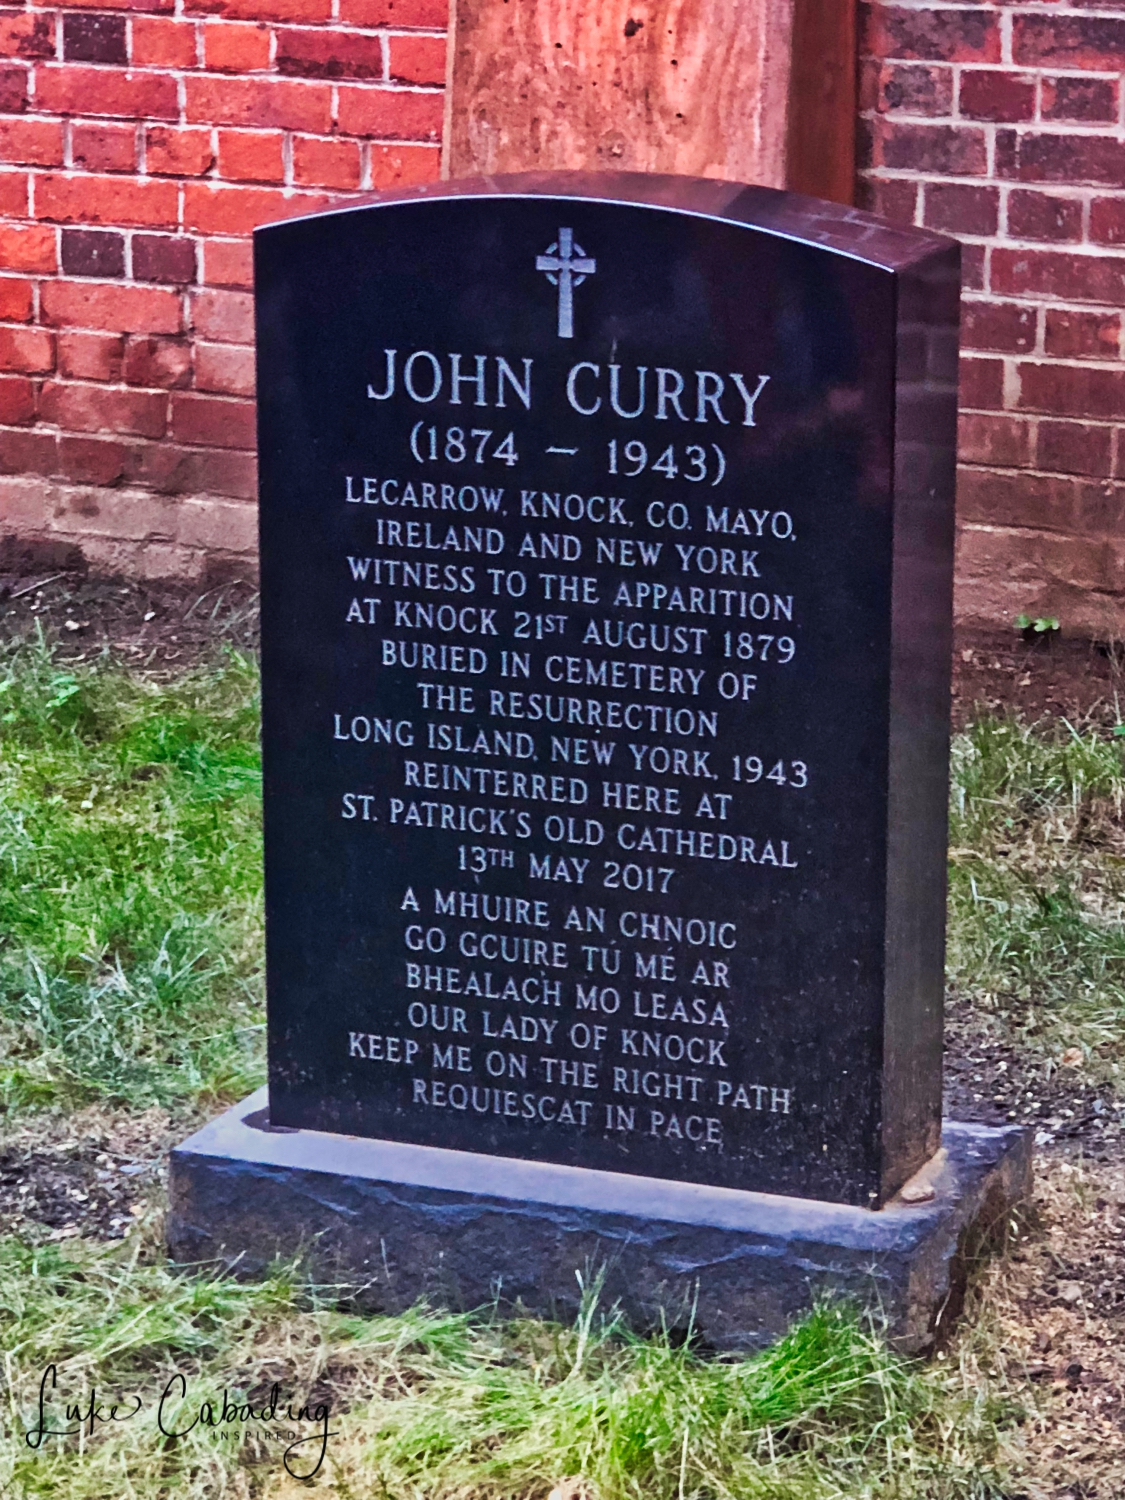 John Curry, one of the 15 witnesses to the apparition of the Virgin Mary in Knock, Ireland in 1879 was reinterred in the walled cemetery on the Basilica grounds after a Requiem Mass celebrated by Timothy Cardinal Dolan.